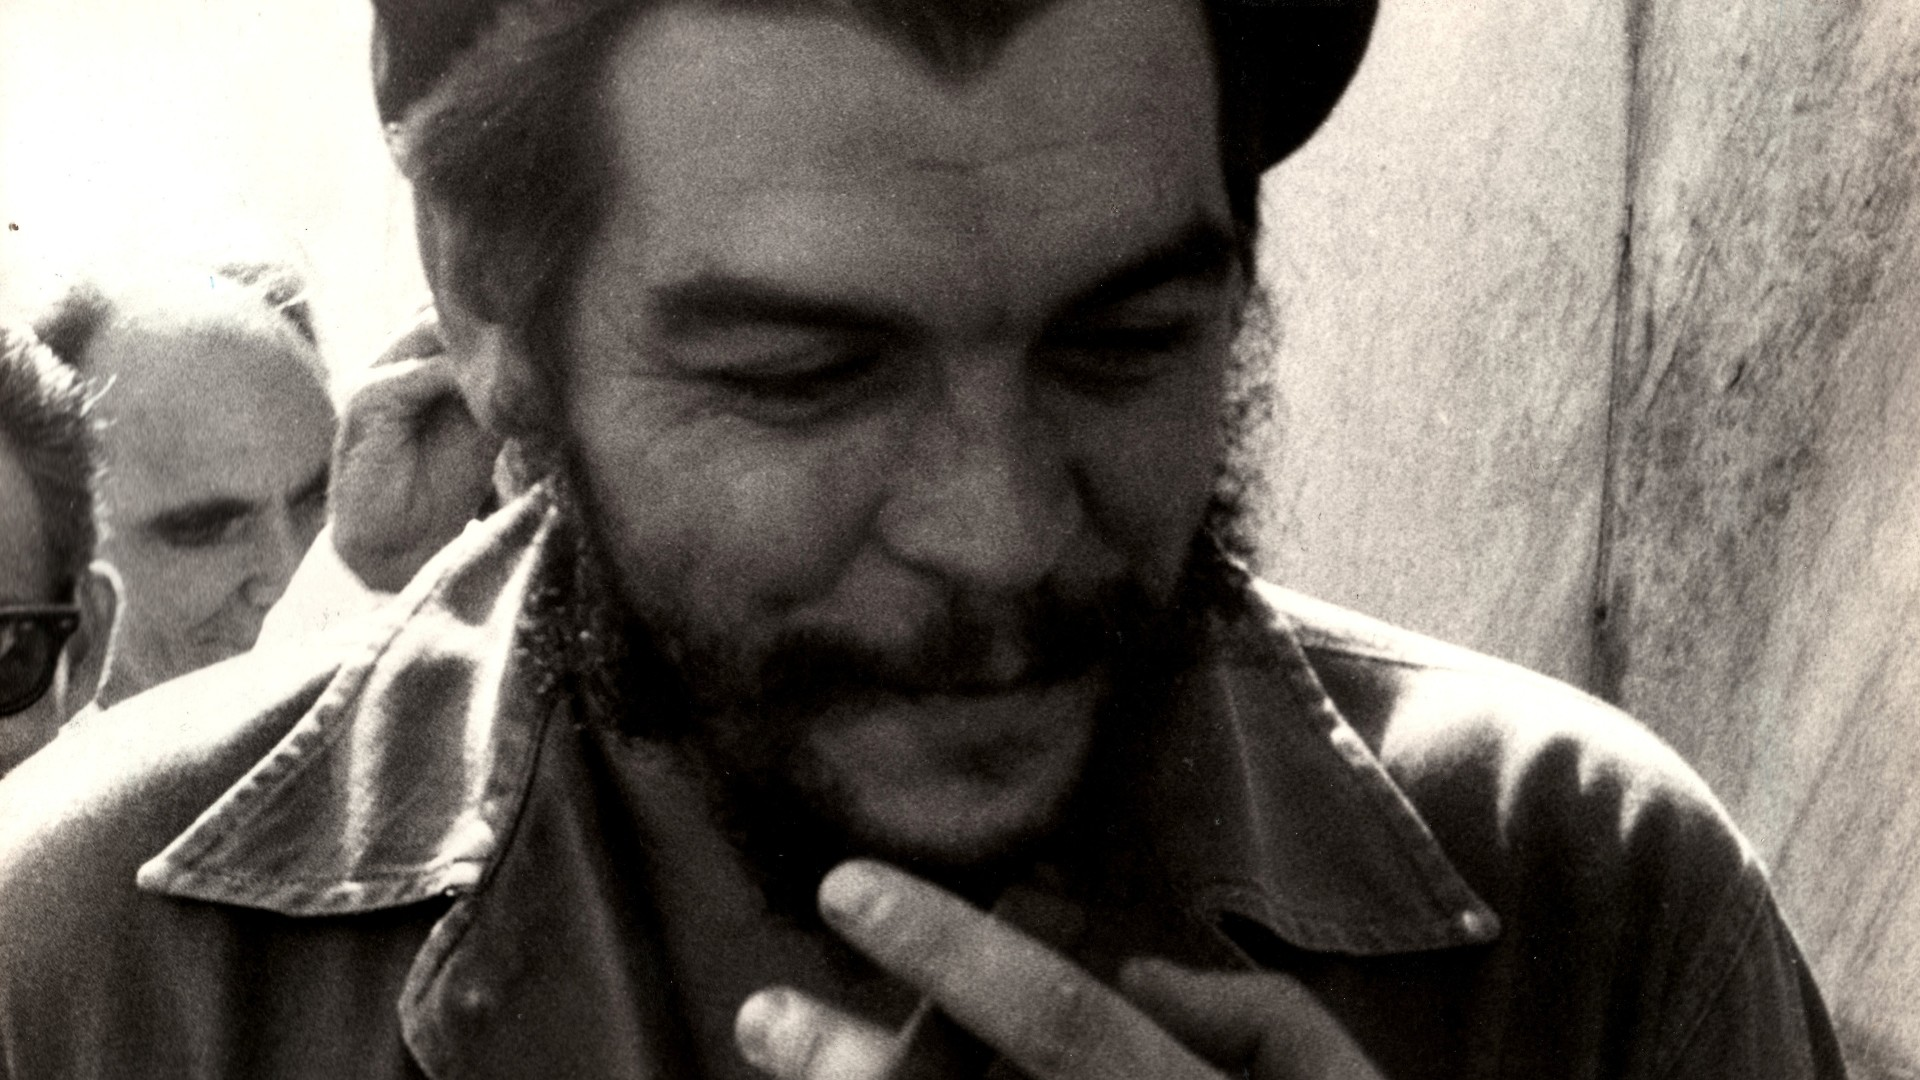 Che Guevara Smiling for 1920 x 1080 HDTV 1080p resolution